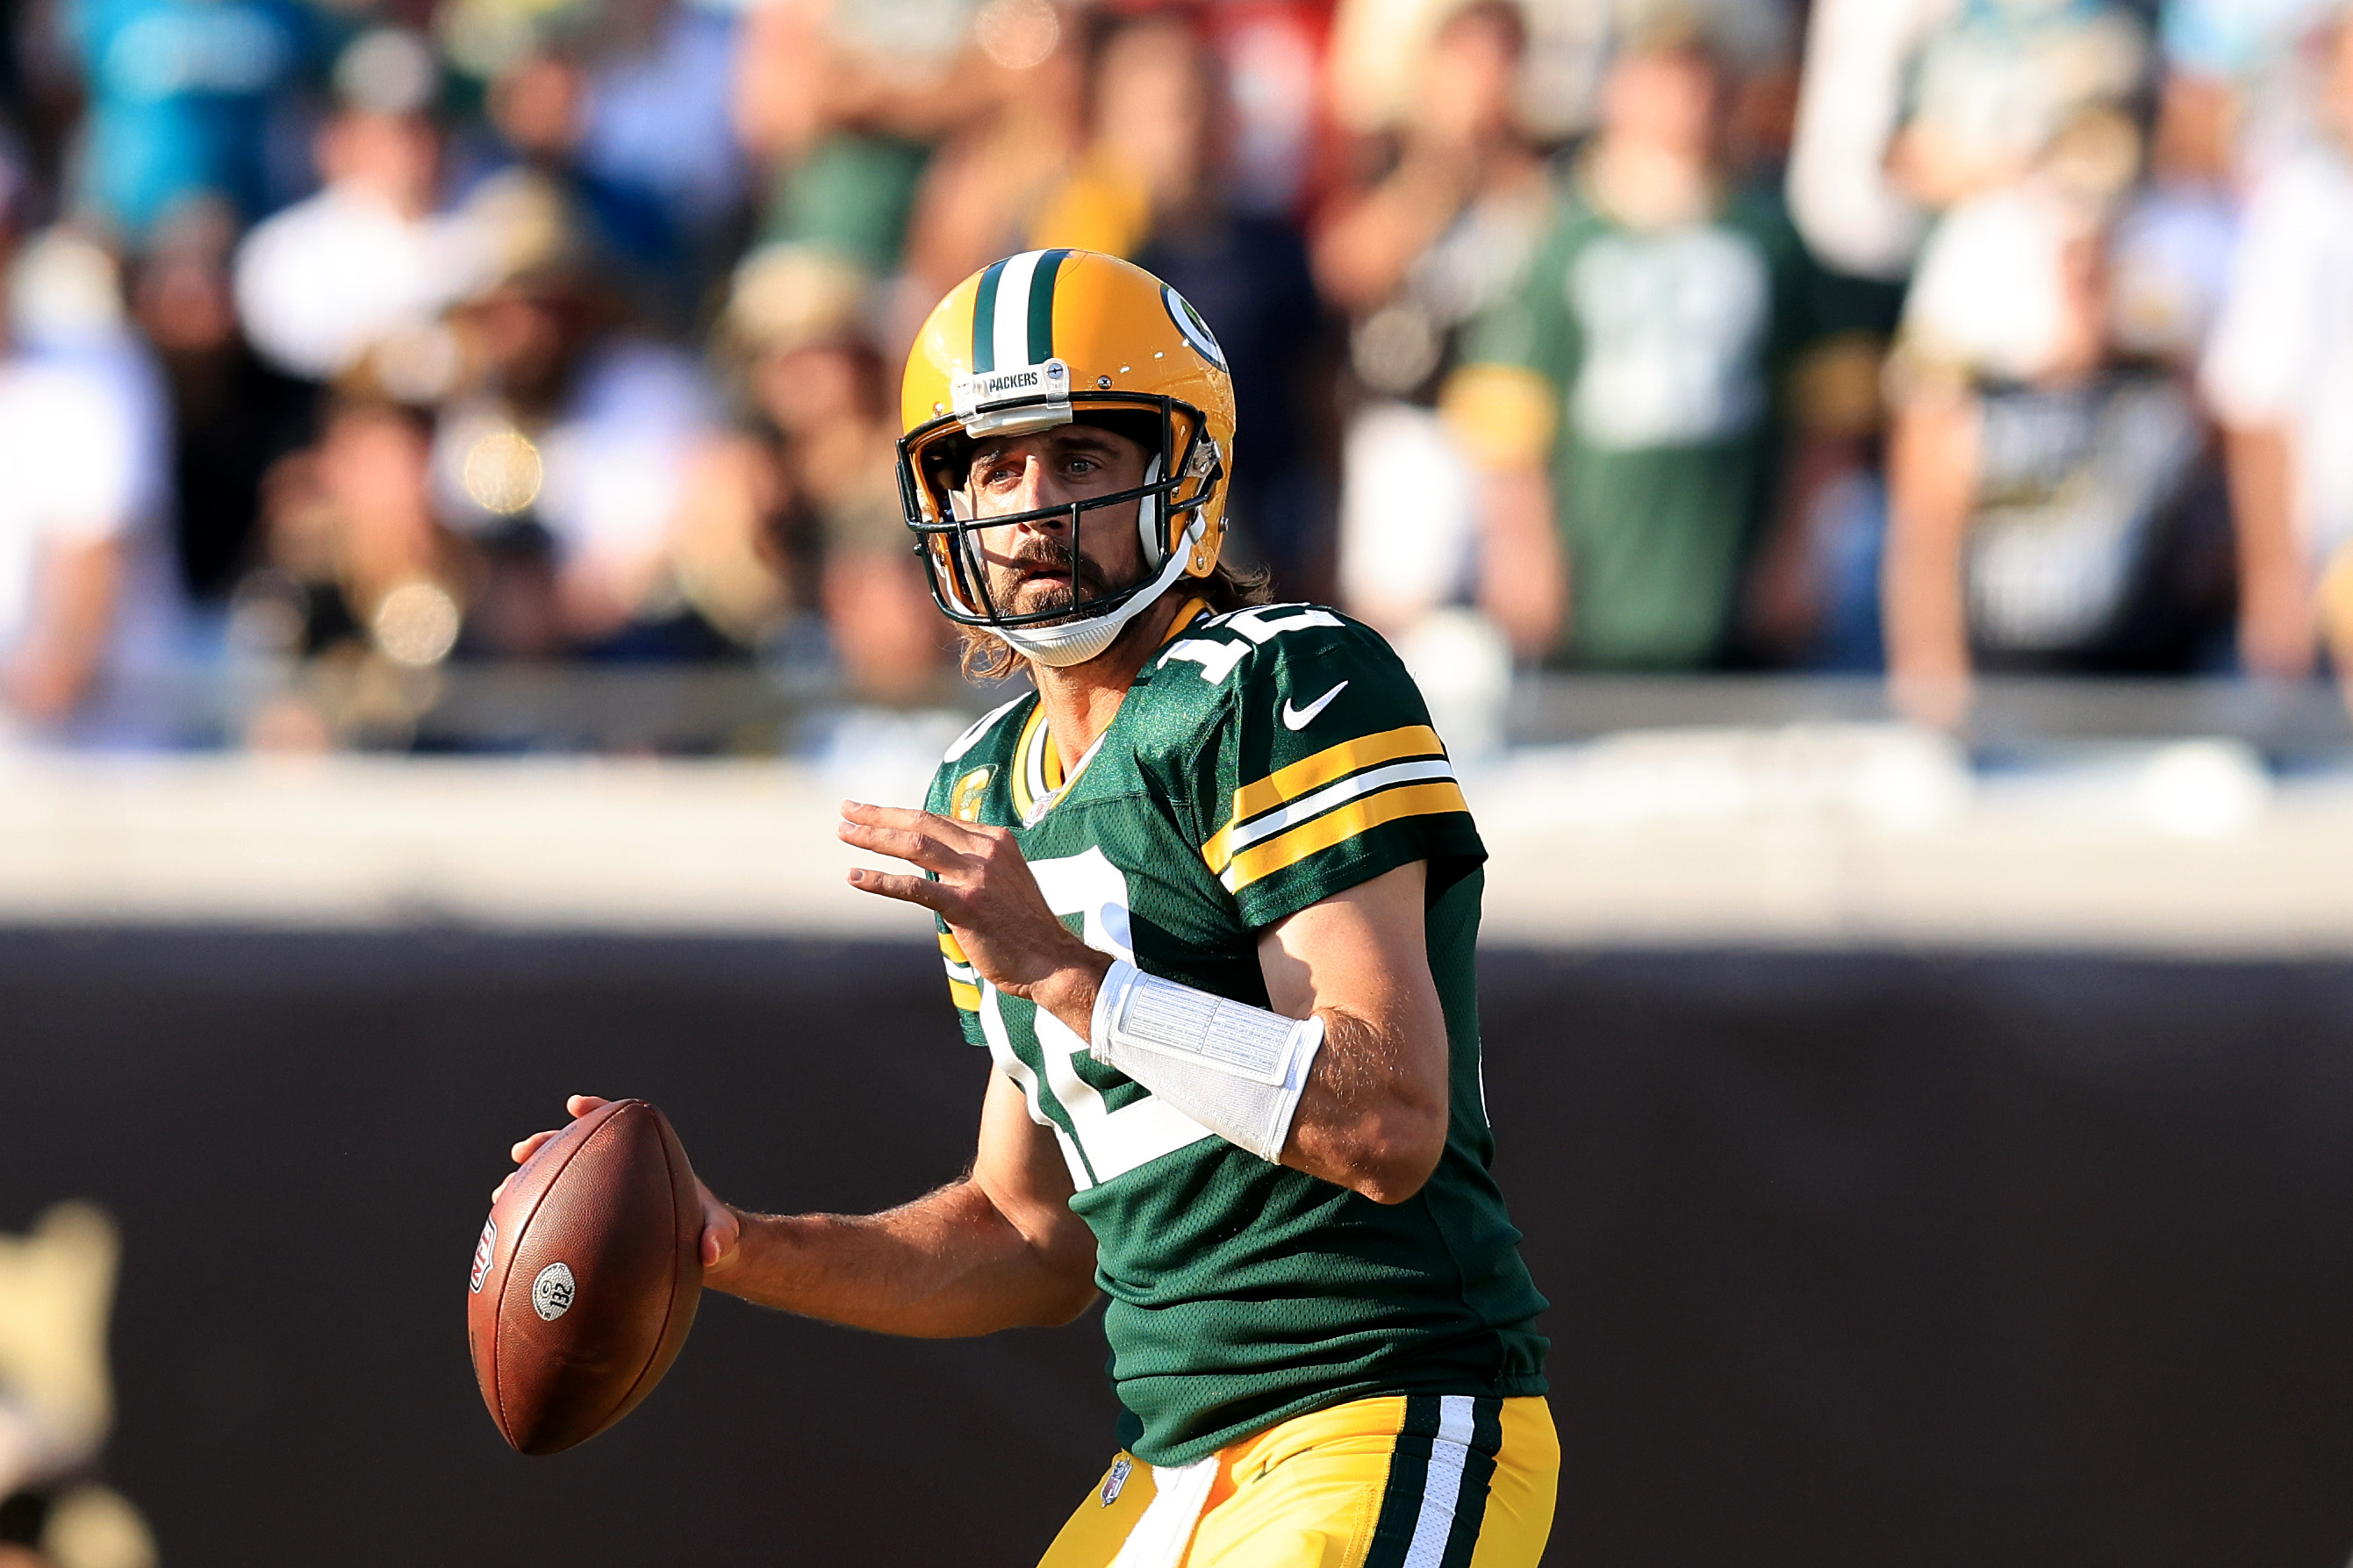 Aaron Rodgers #12 of the Green Bay Packers looks to pass during the game against the New Orleans Saints at TIAA Bank Field on September 12, 2021 in Jacksonville, Florida.